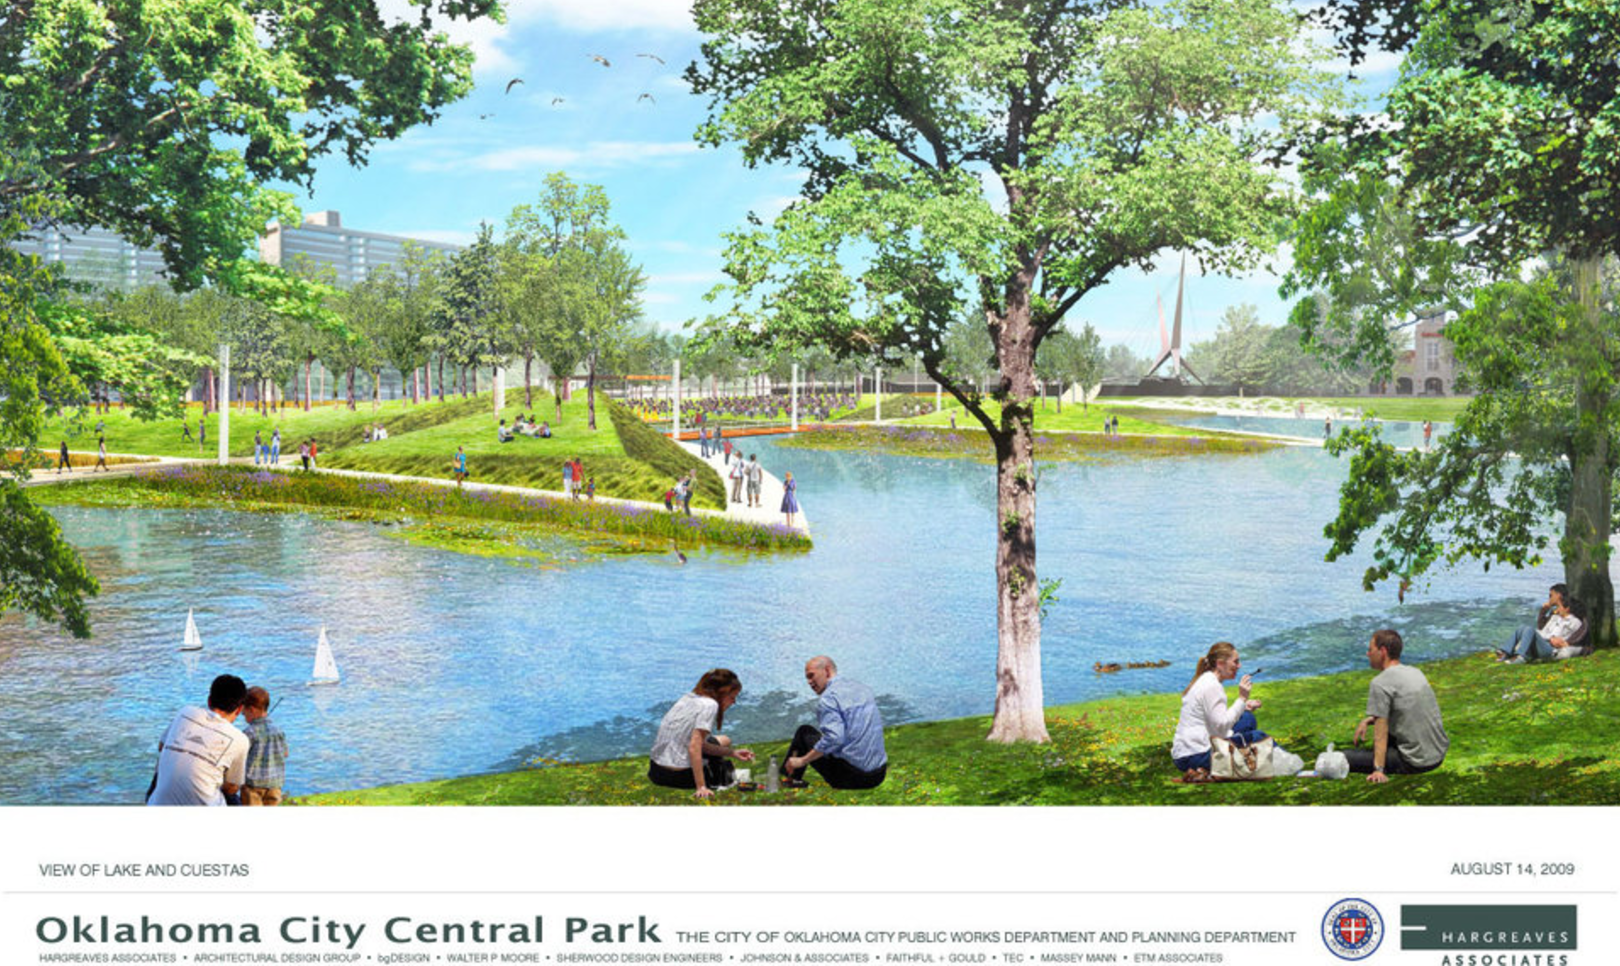 OKCS MAPS 3 NEW PARK NAME IS SCISSORTAIL PARK